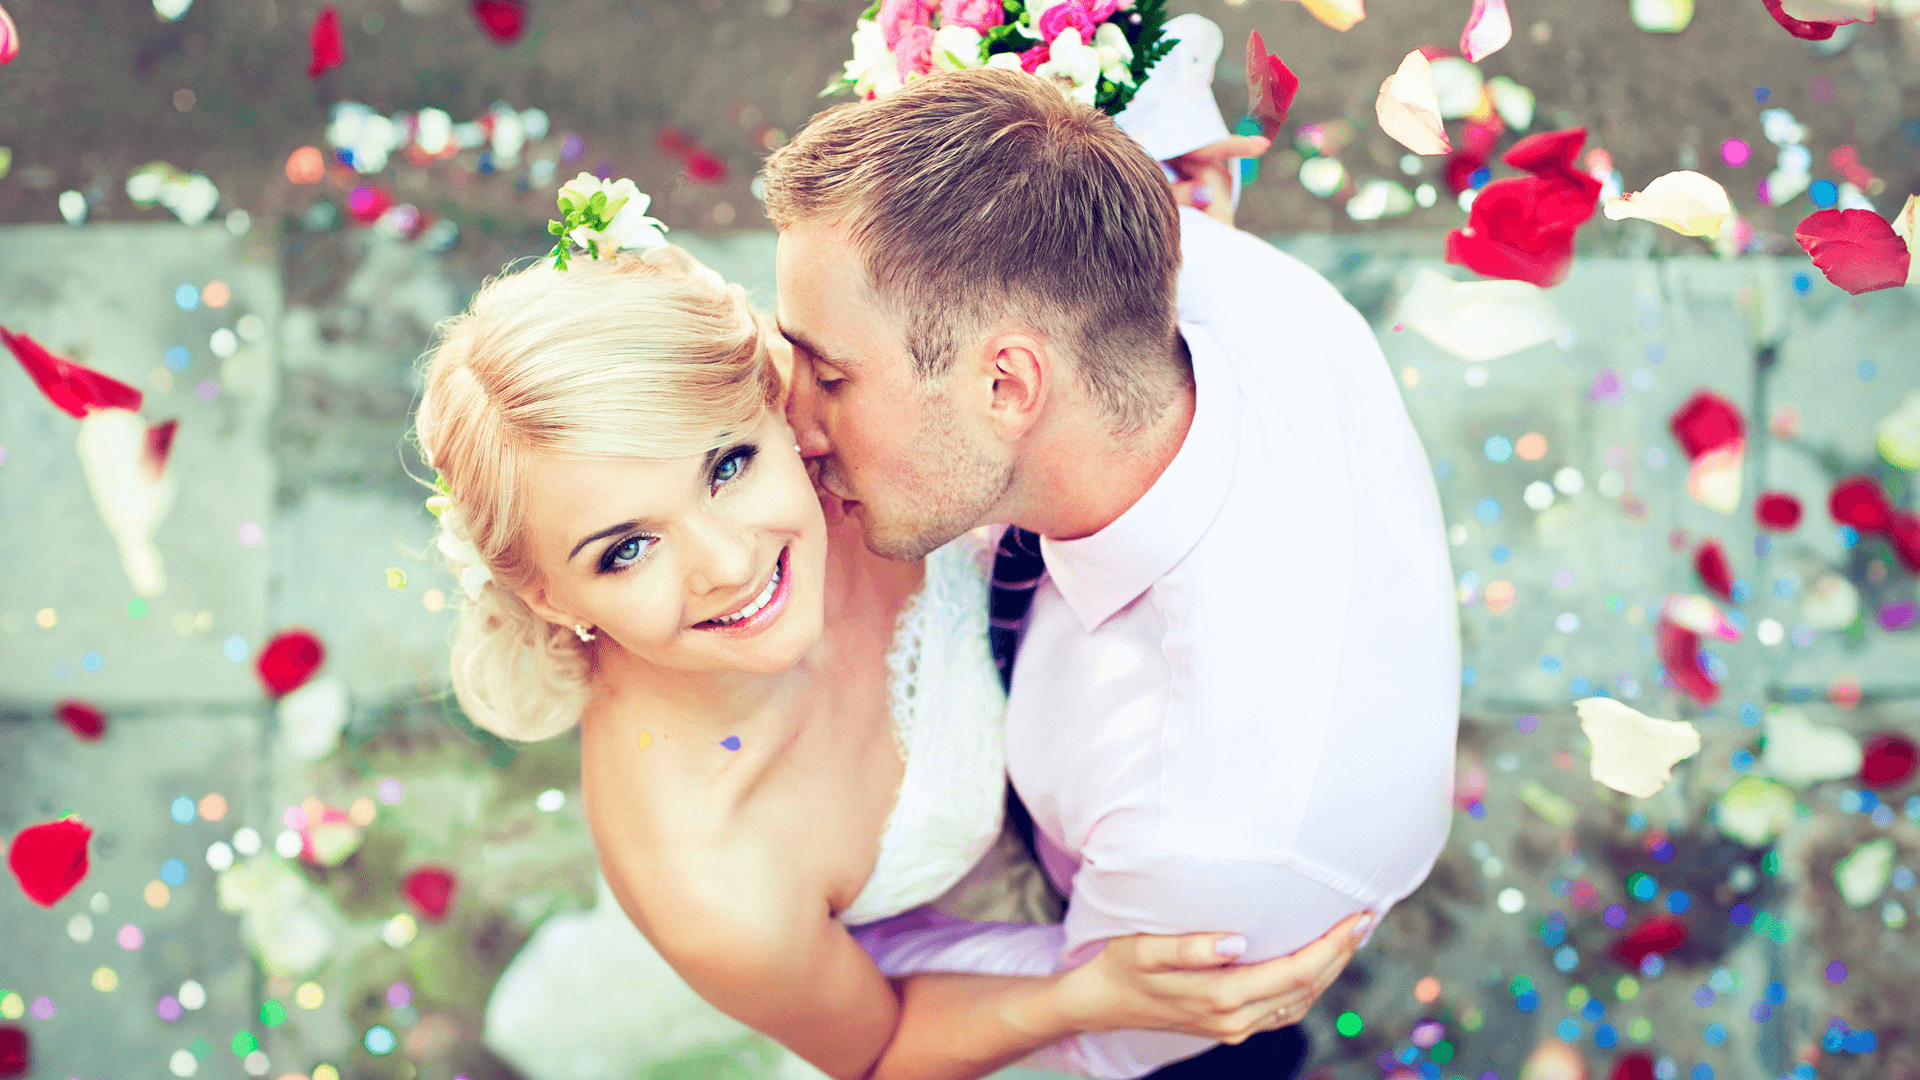 A Bride's Guide To Great Wedding Photographs